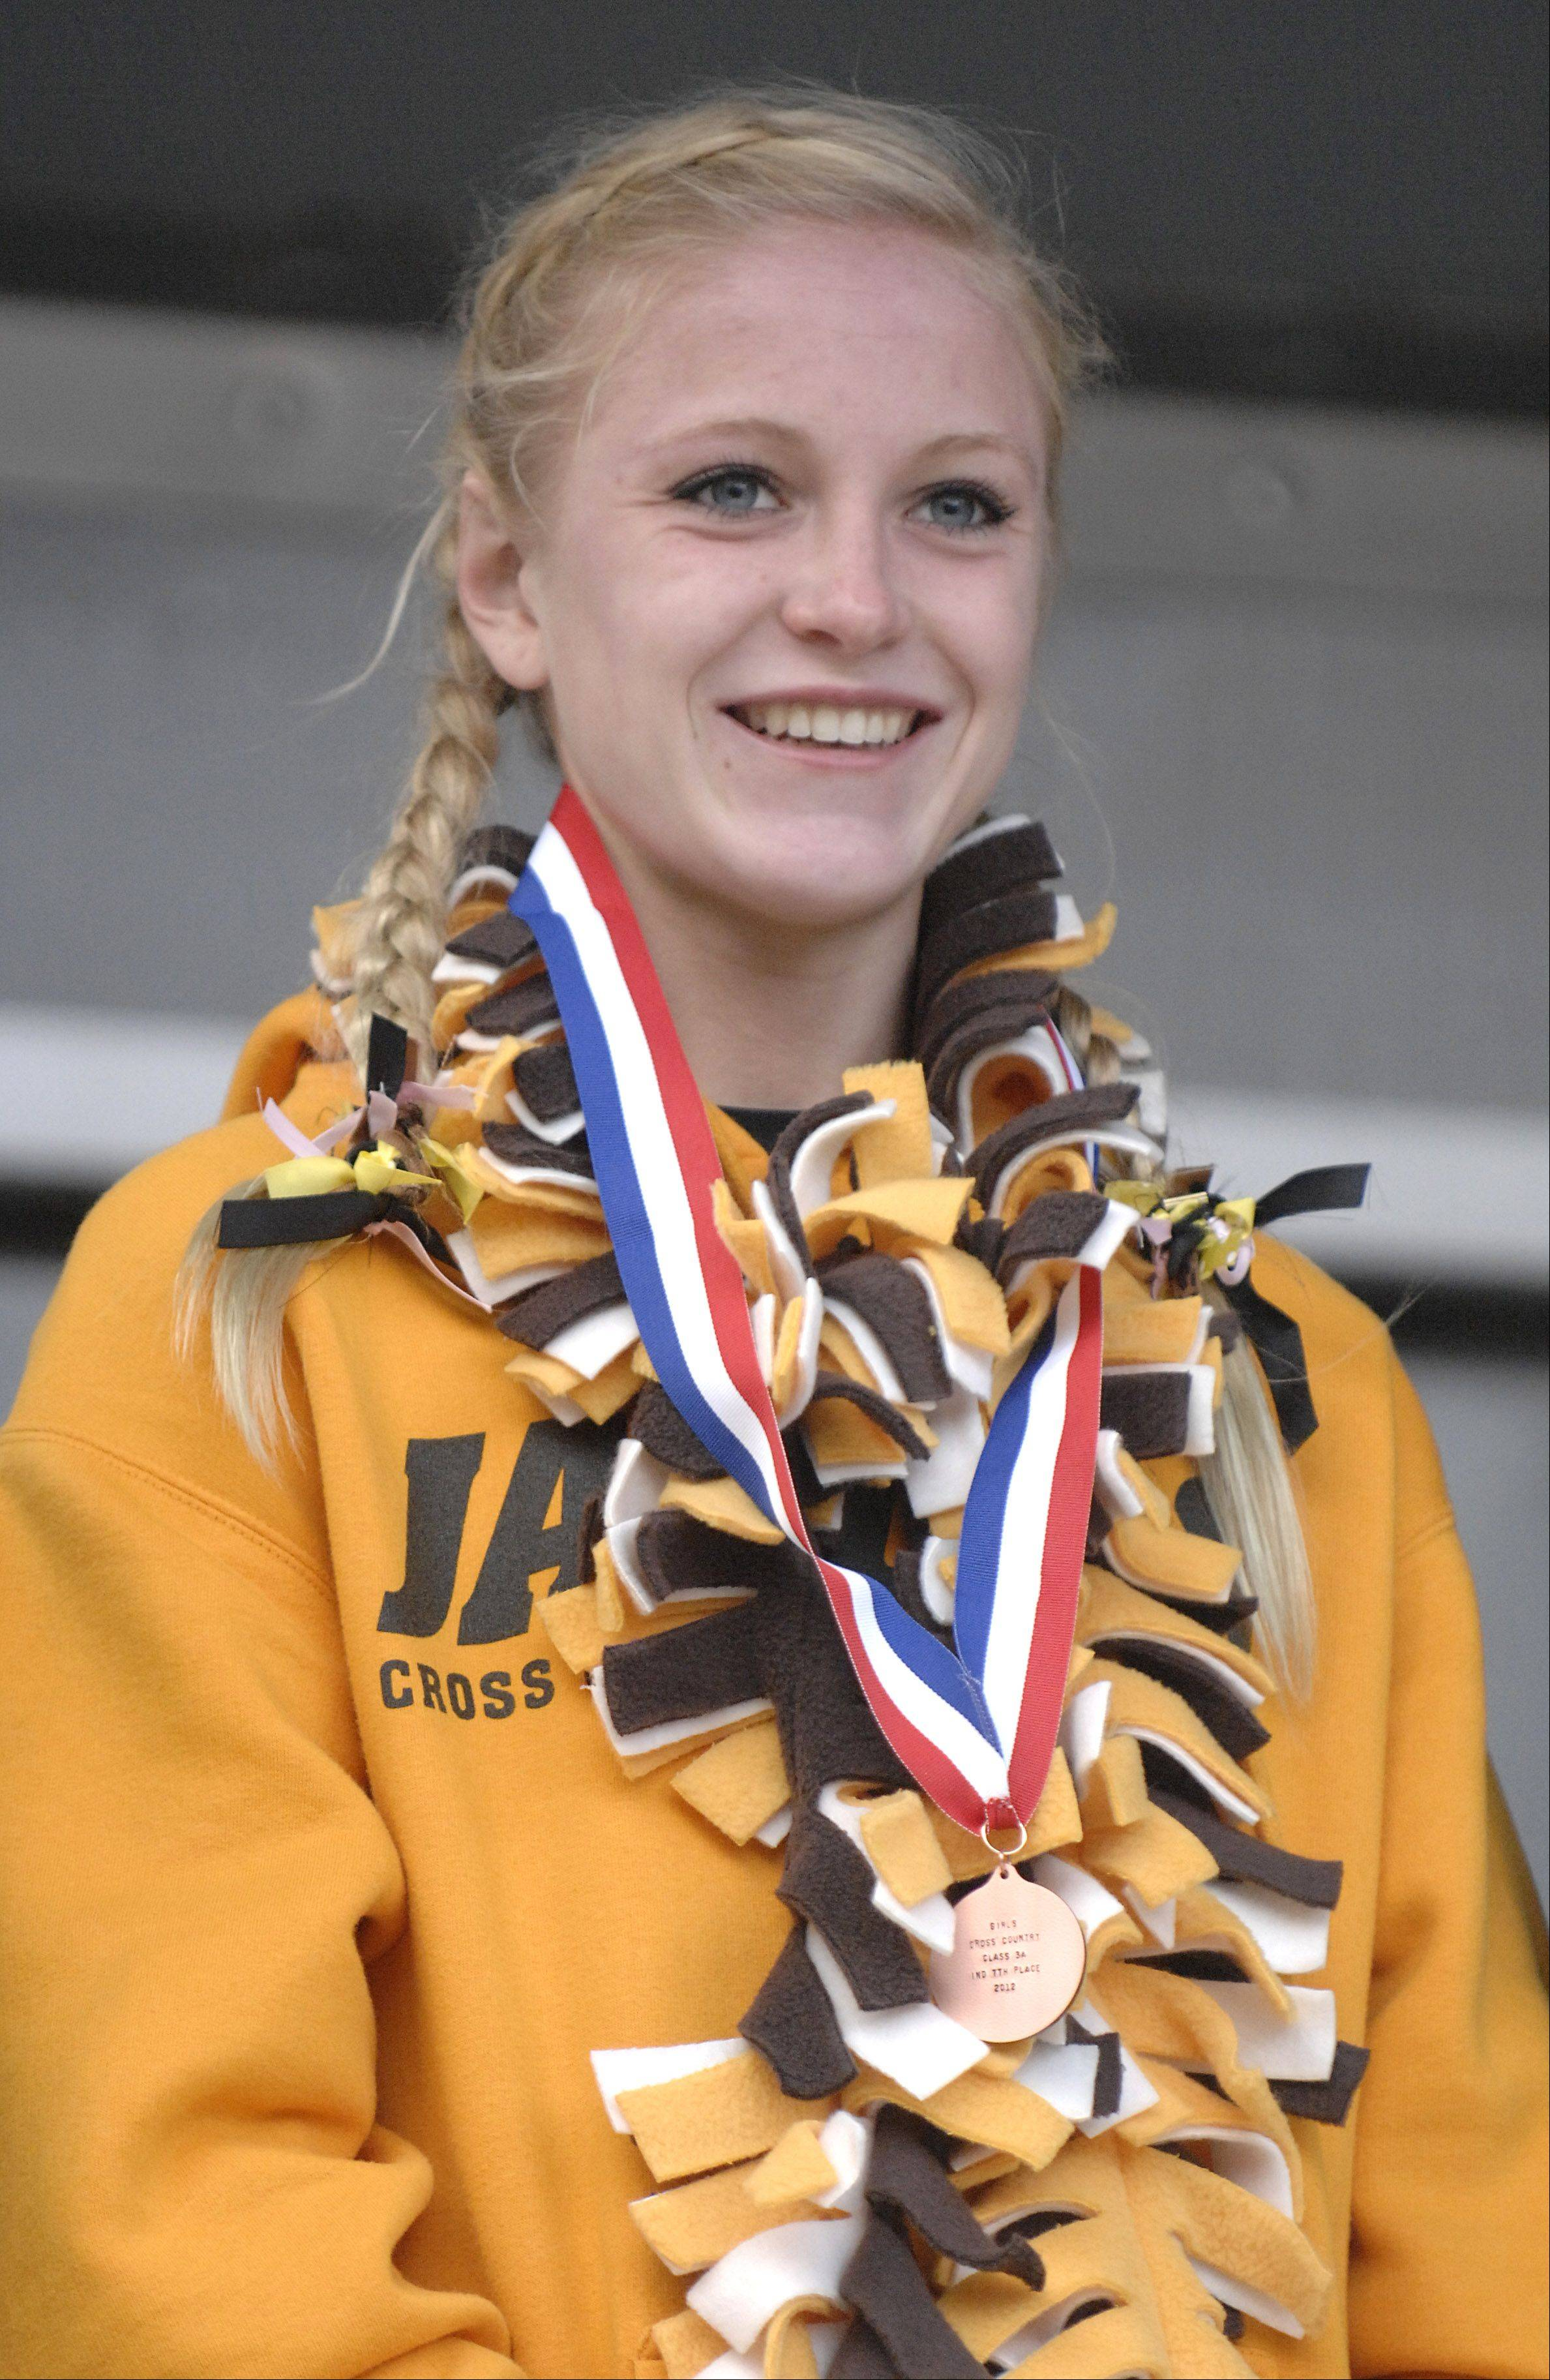 Jacobs' Lauren Van Vlierbergen and her 3A seventh place medal at the cross country state finals in Peoria on Saturday, November 3.